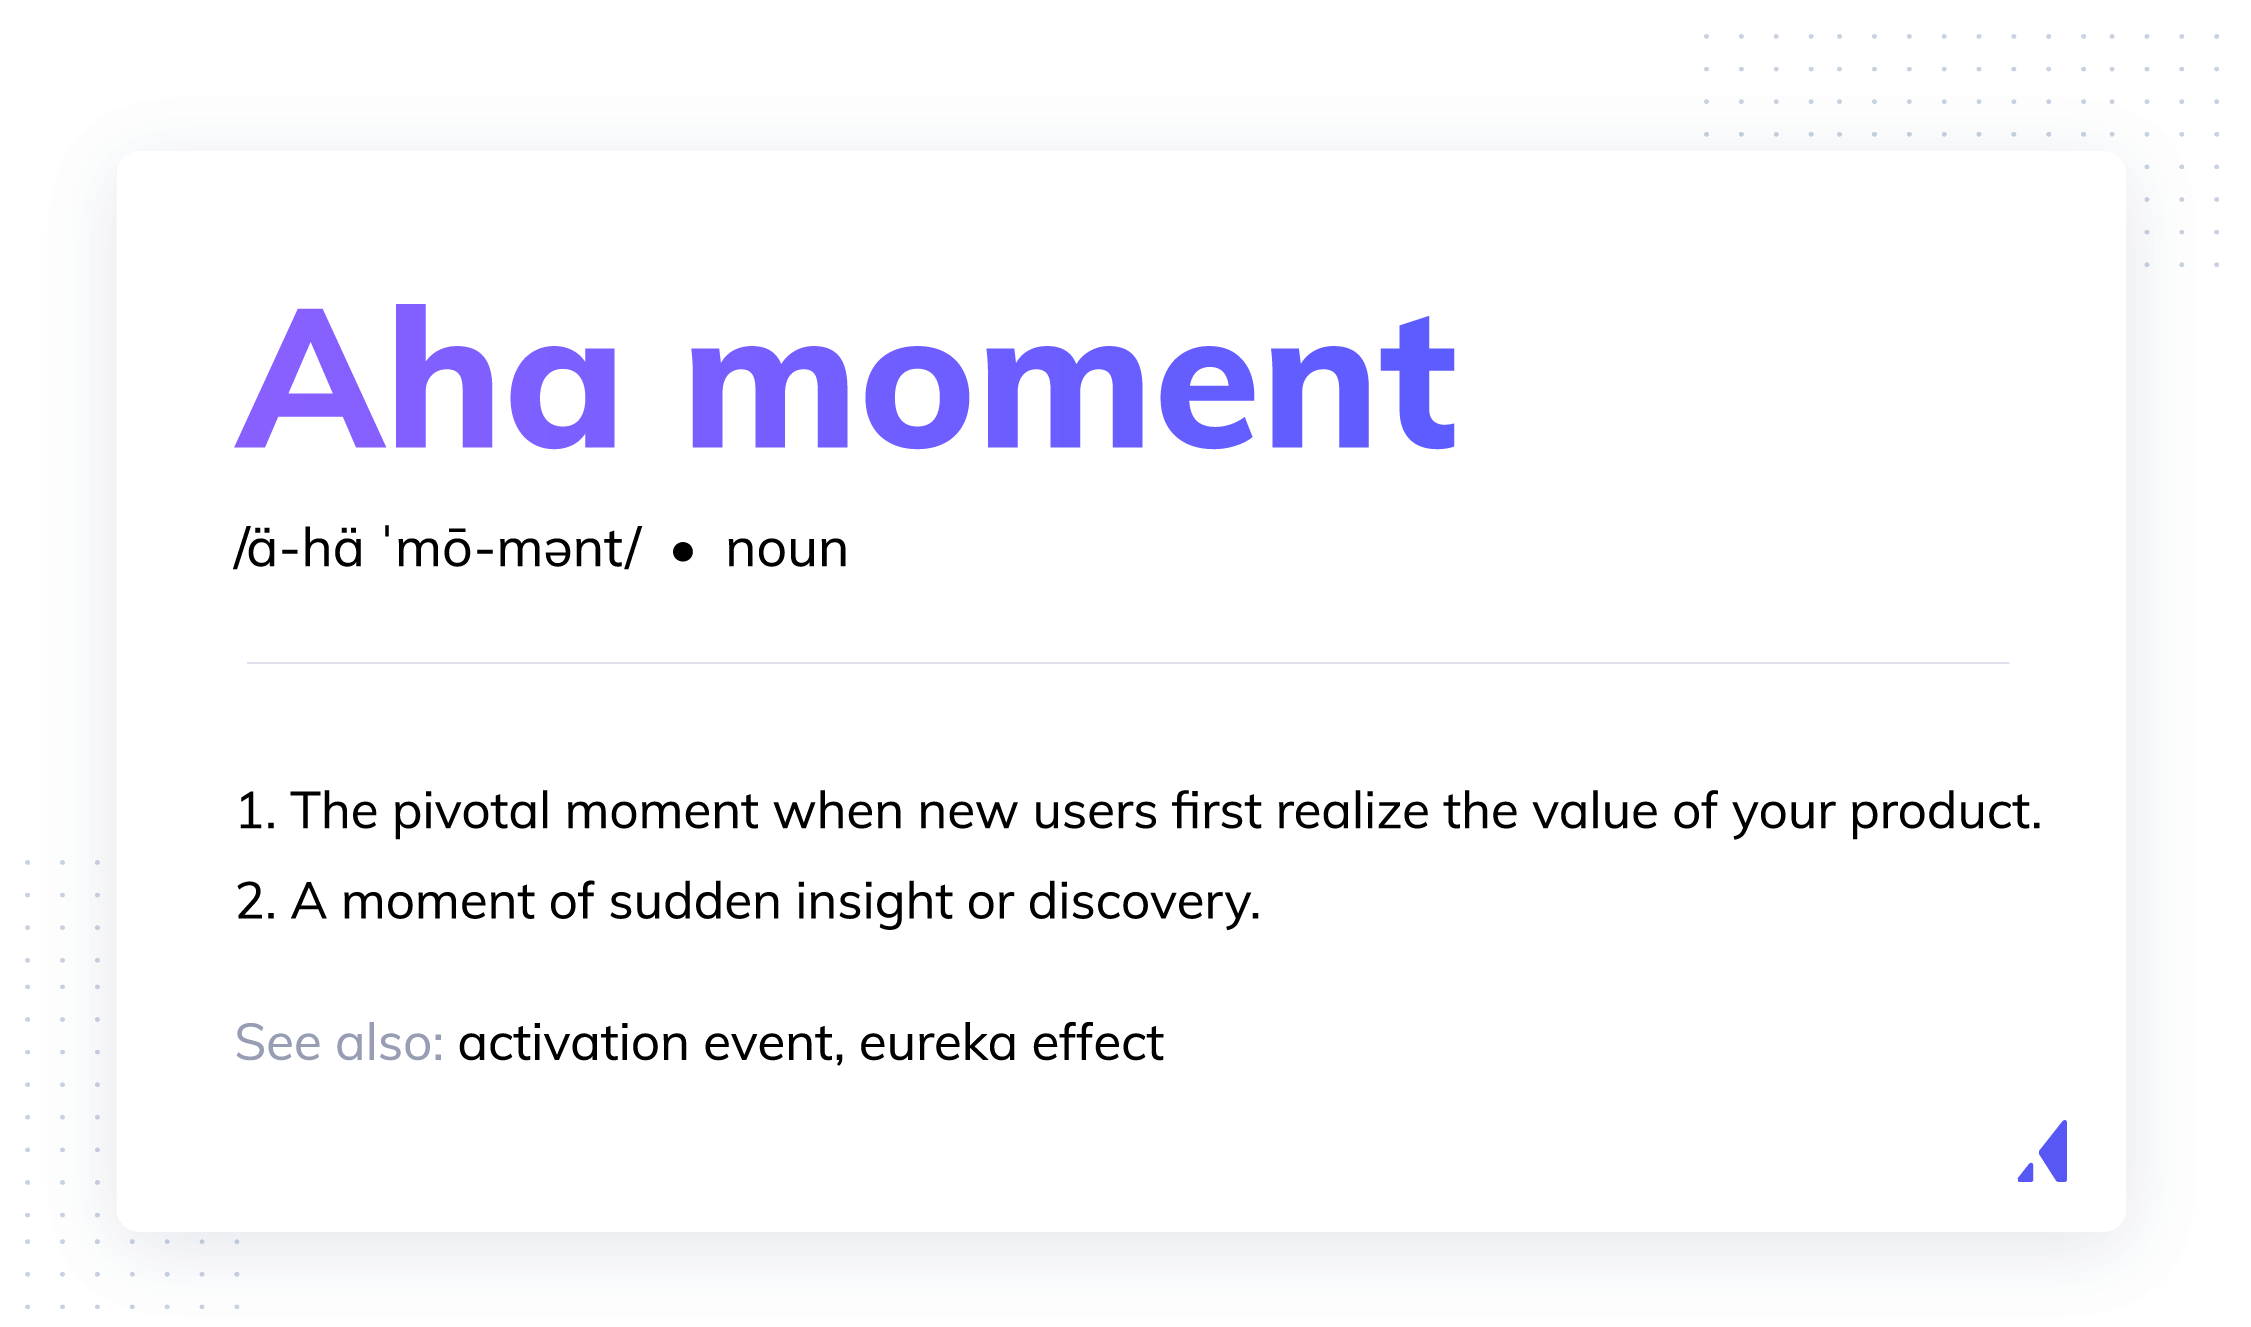 Aha moment definition. In software,  the aha moment is when a new user first realizes the value of a product or service.